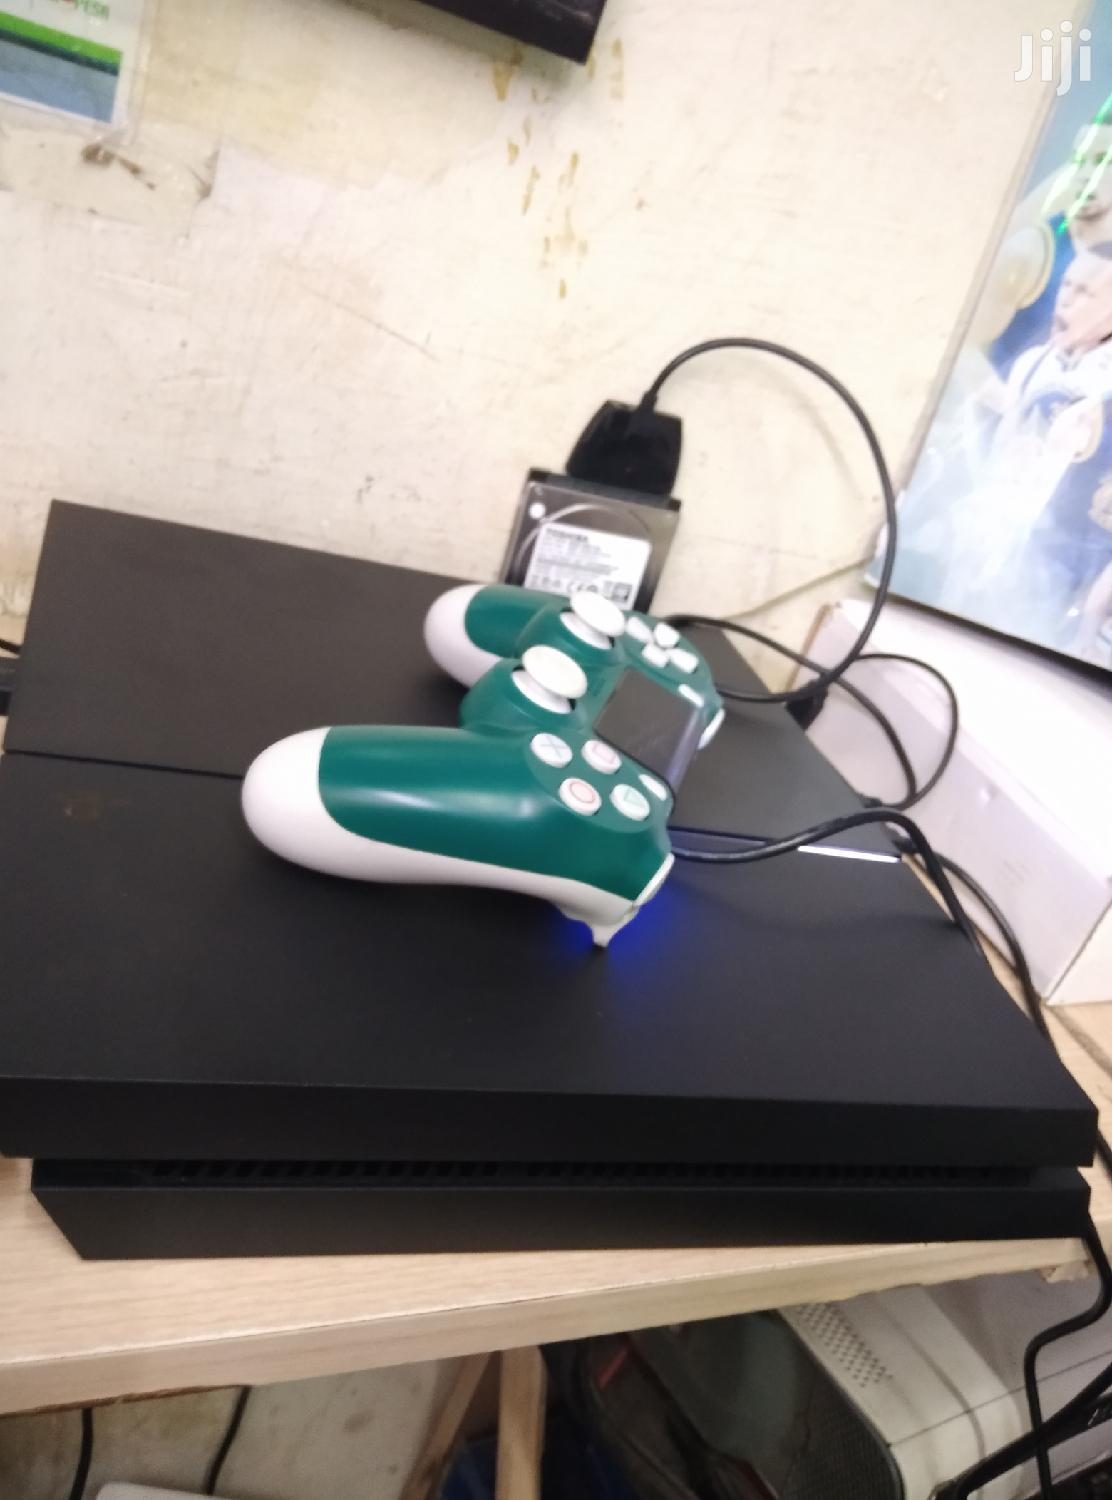 Ps4 1 Tb Chipped With 20 Latest Games | Video Game Consoles for sale in Nairobi Central, Nairobi, Kenya